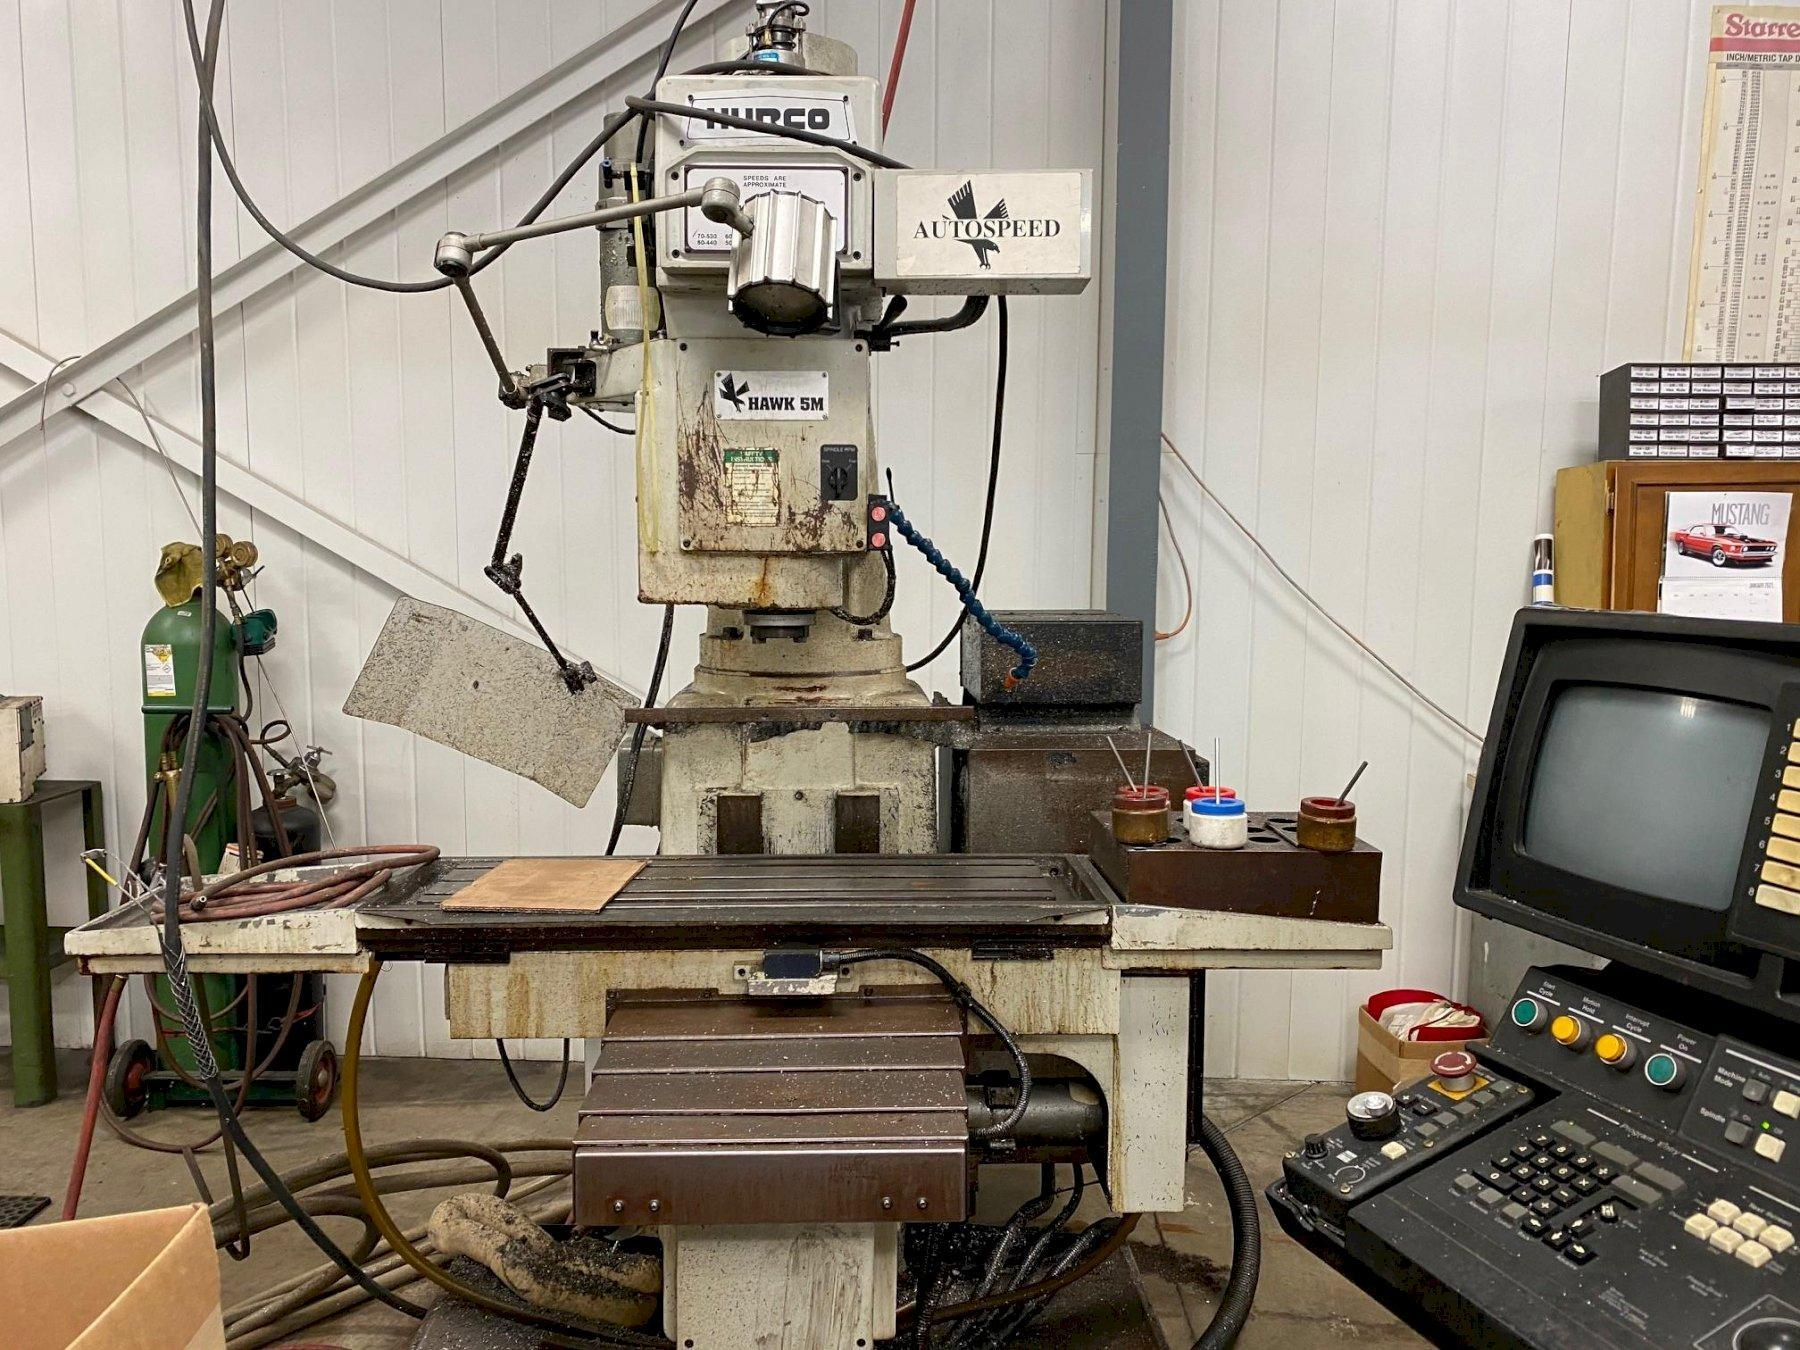 HURCO HAWK 5M 3-AXIS CNC VERTICAL MILL